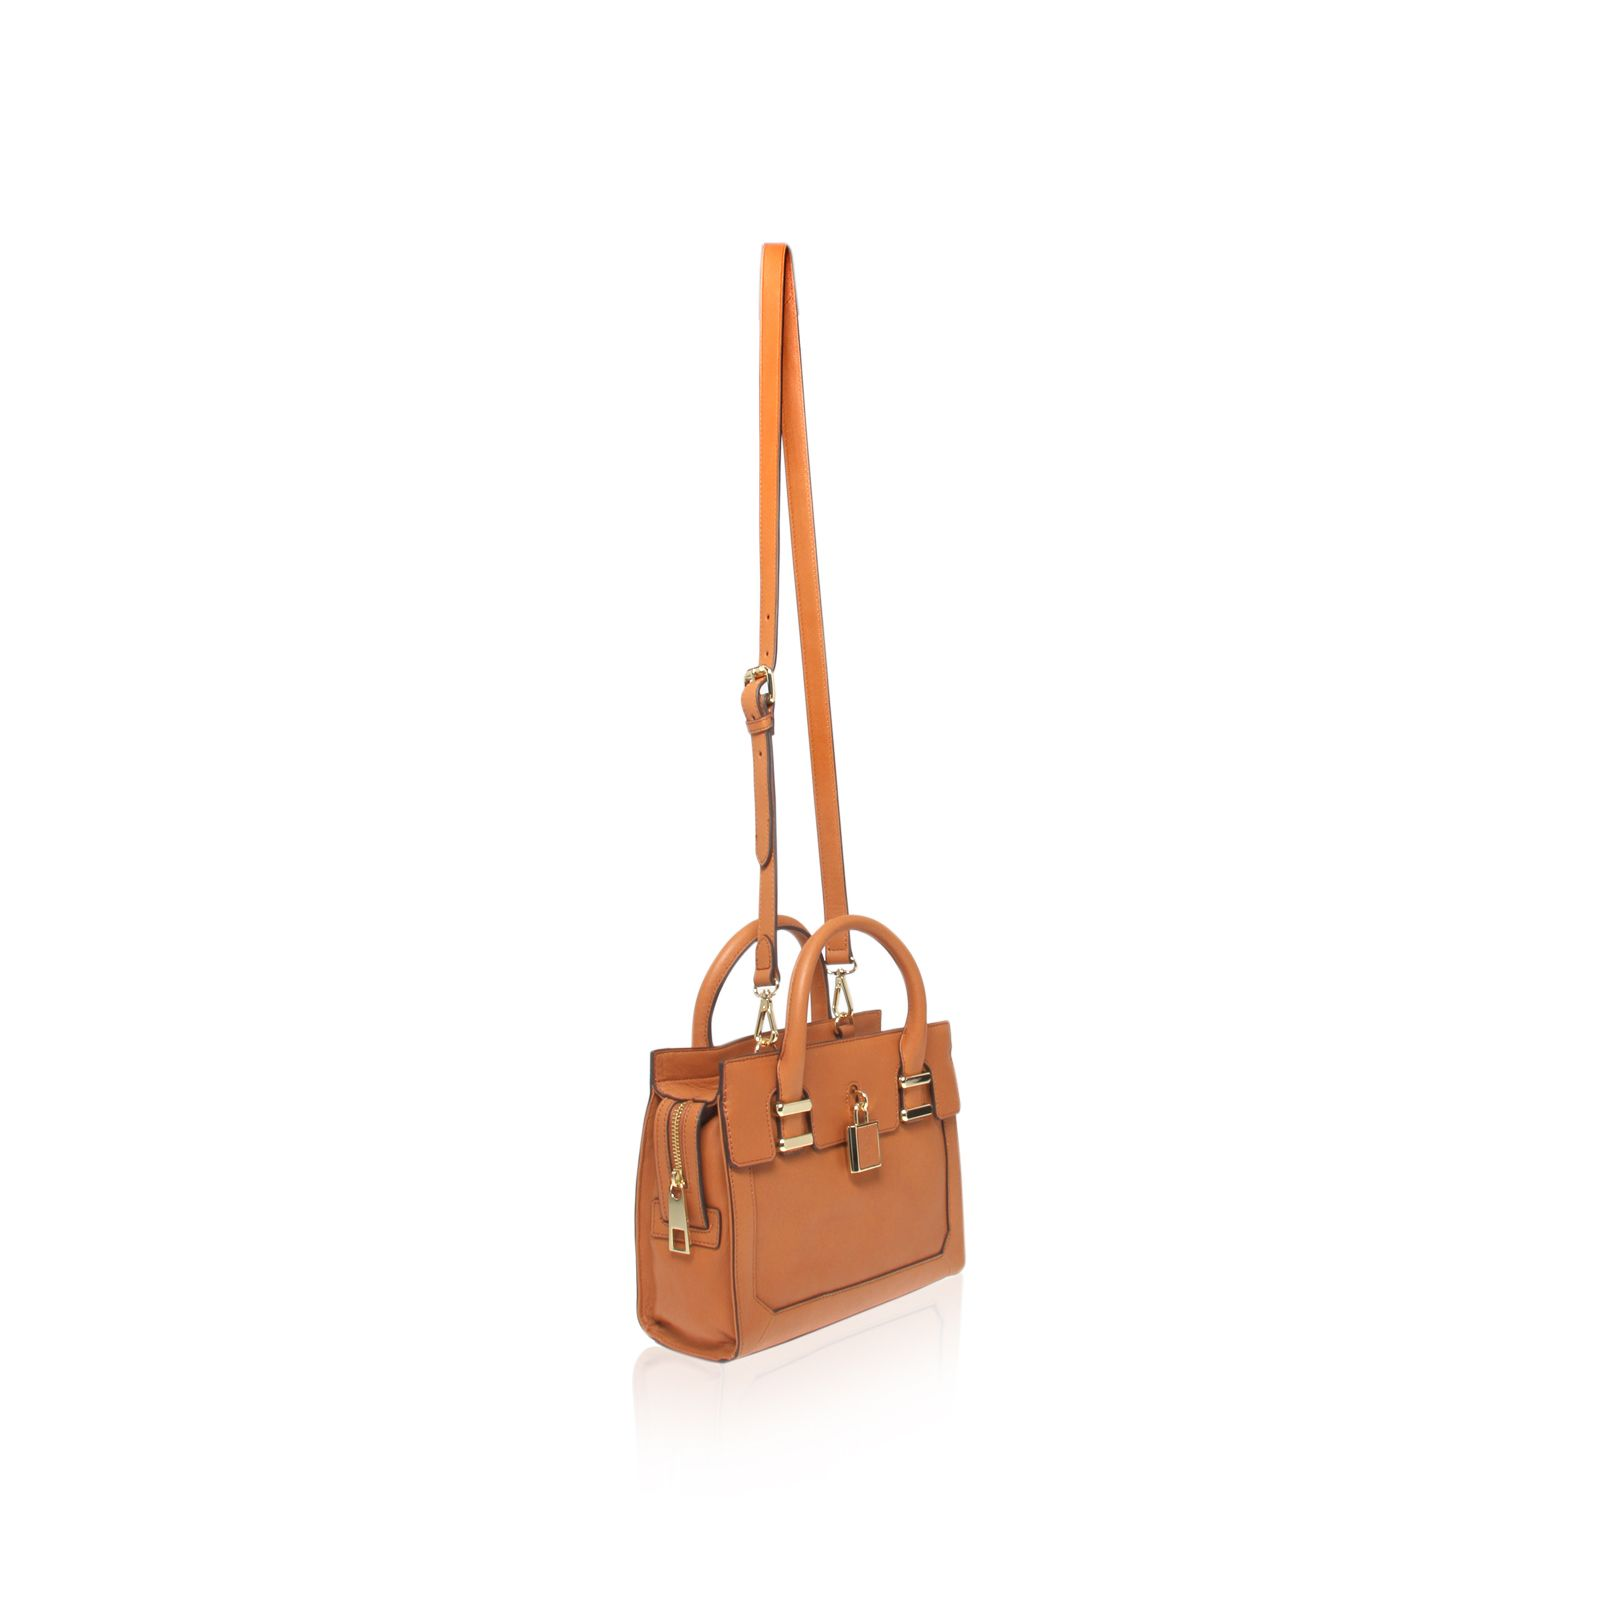 Heidi Tan Crossbody Bag